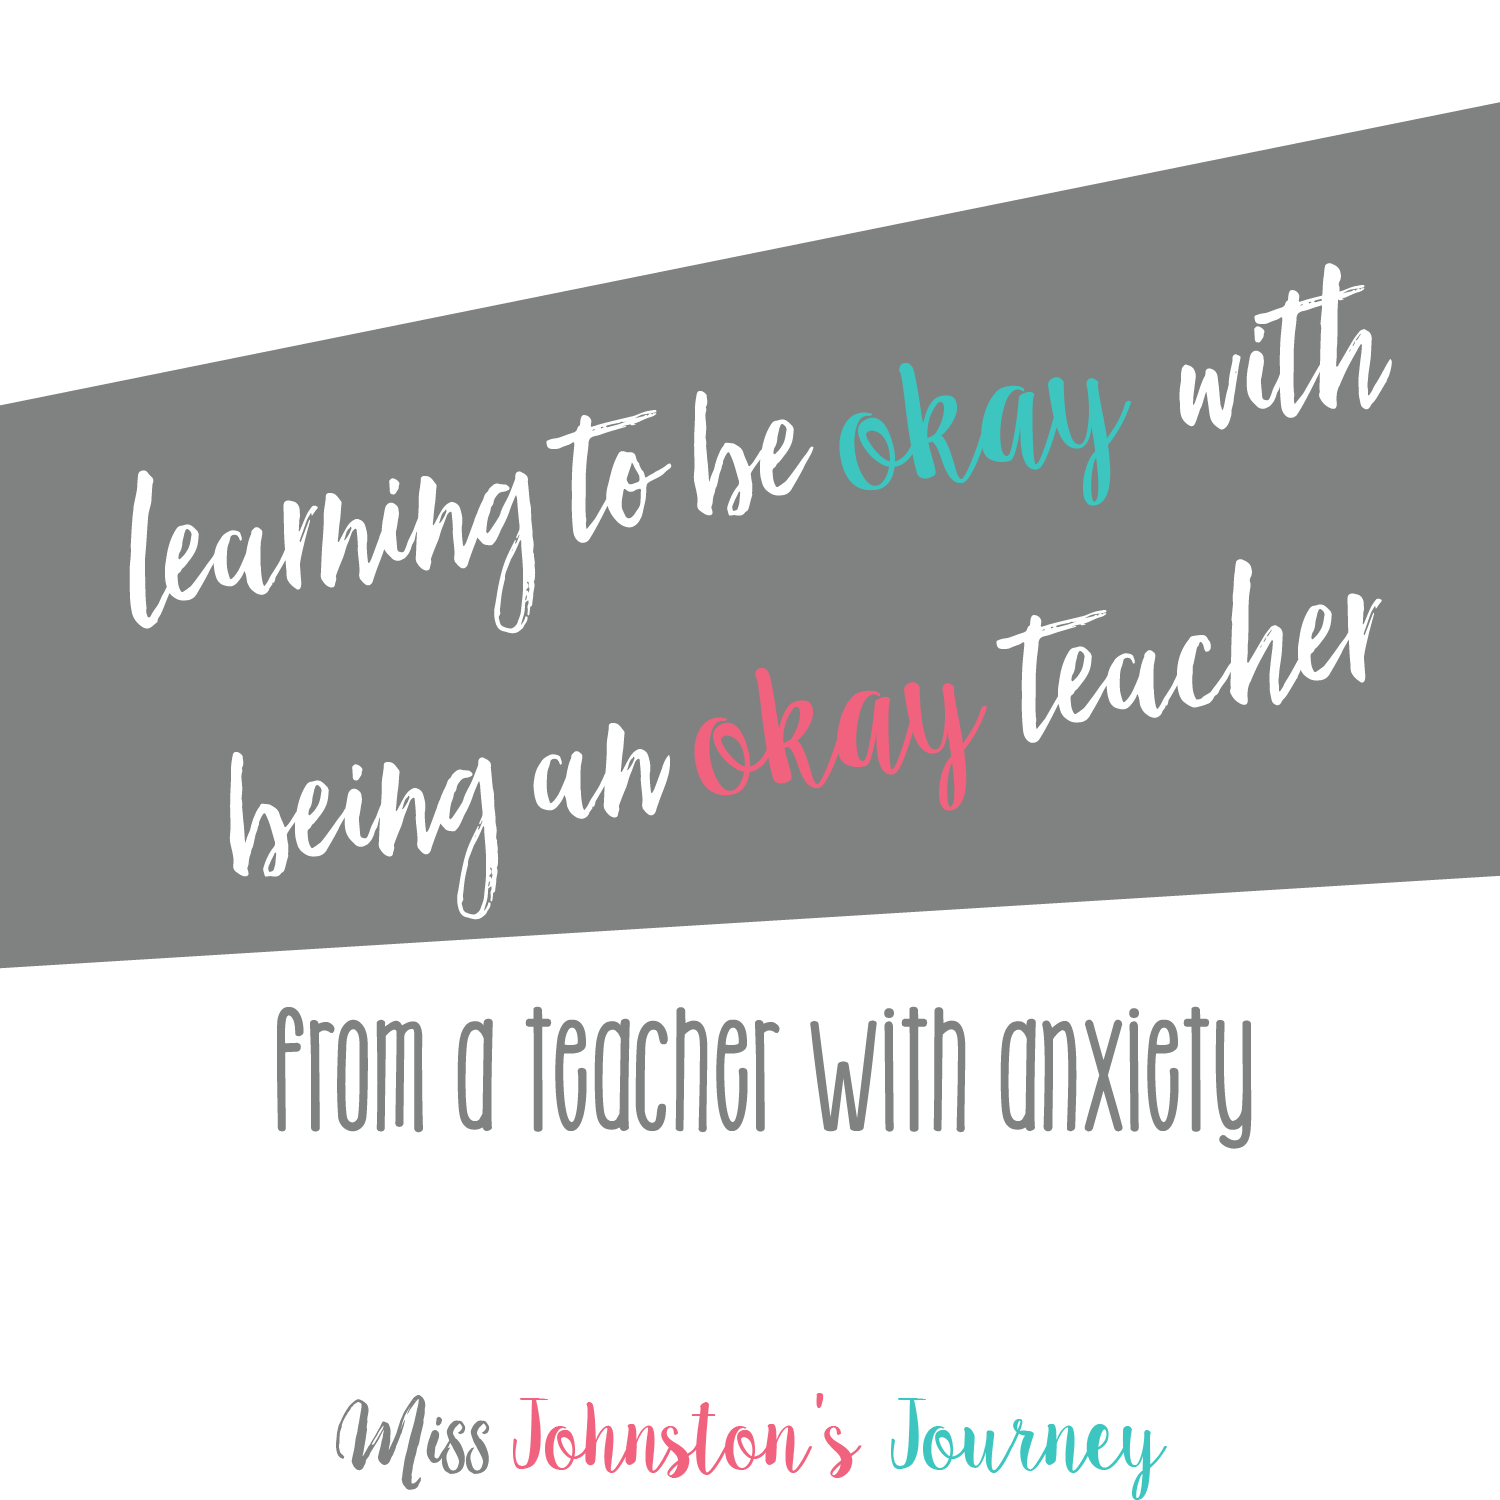 Can T Do My Job Because Of Anxiety learning to be okay with being an okay teacher - miss